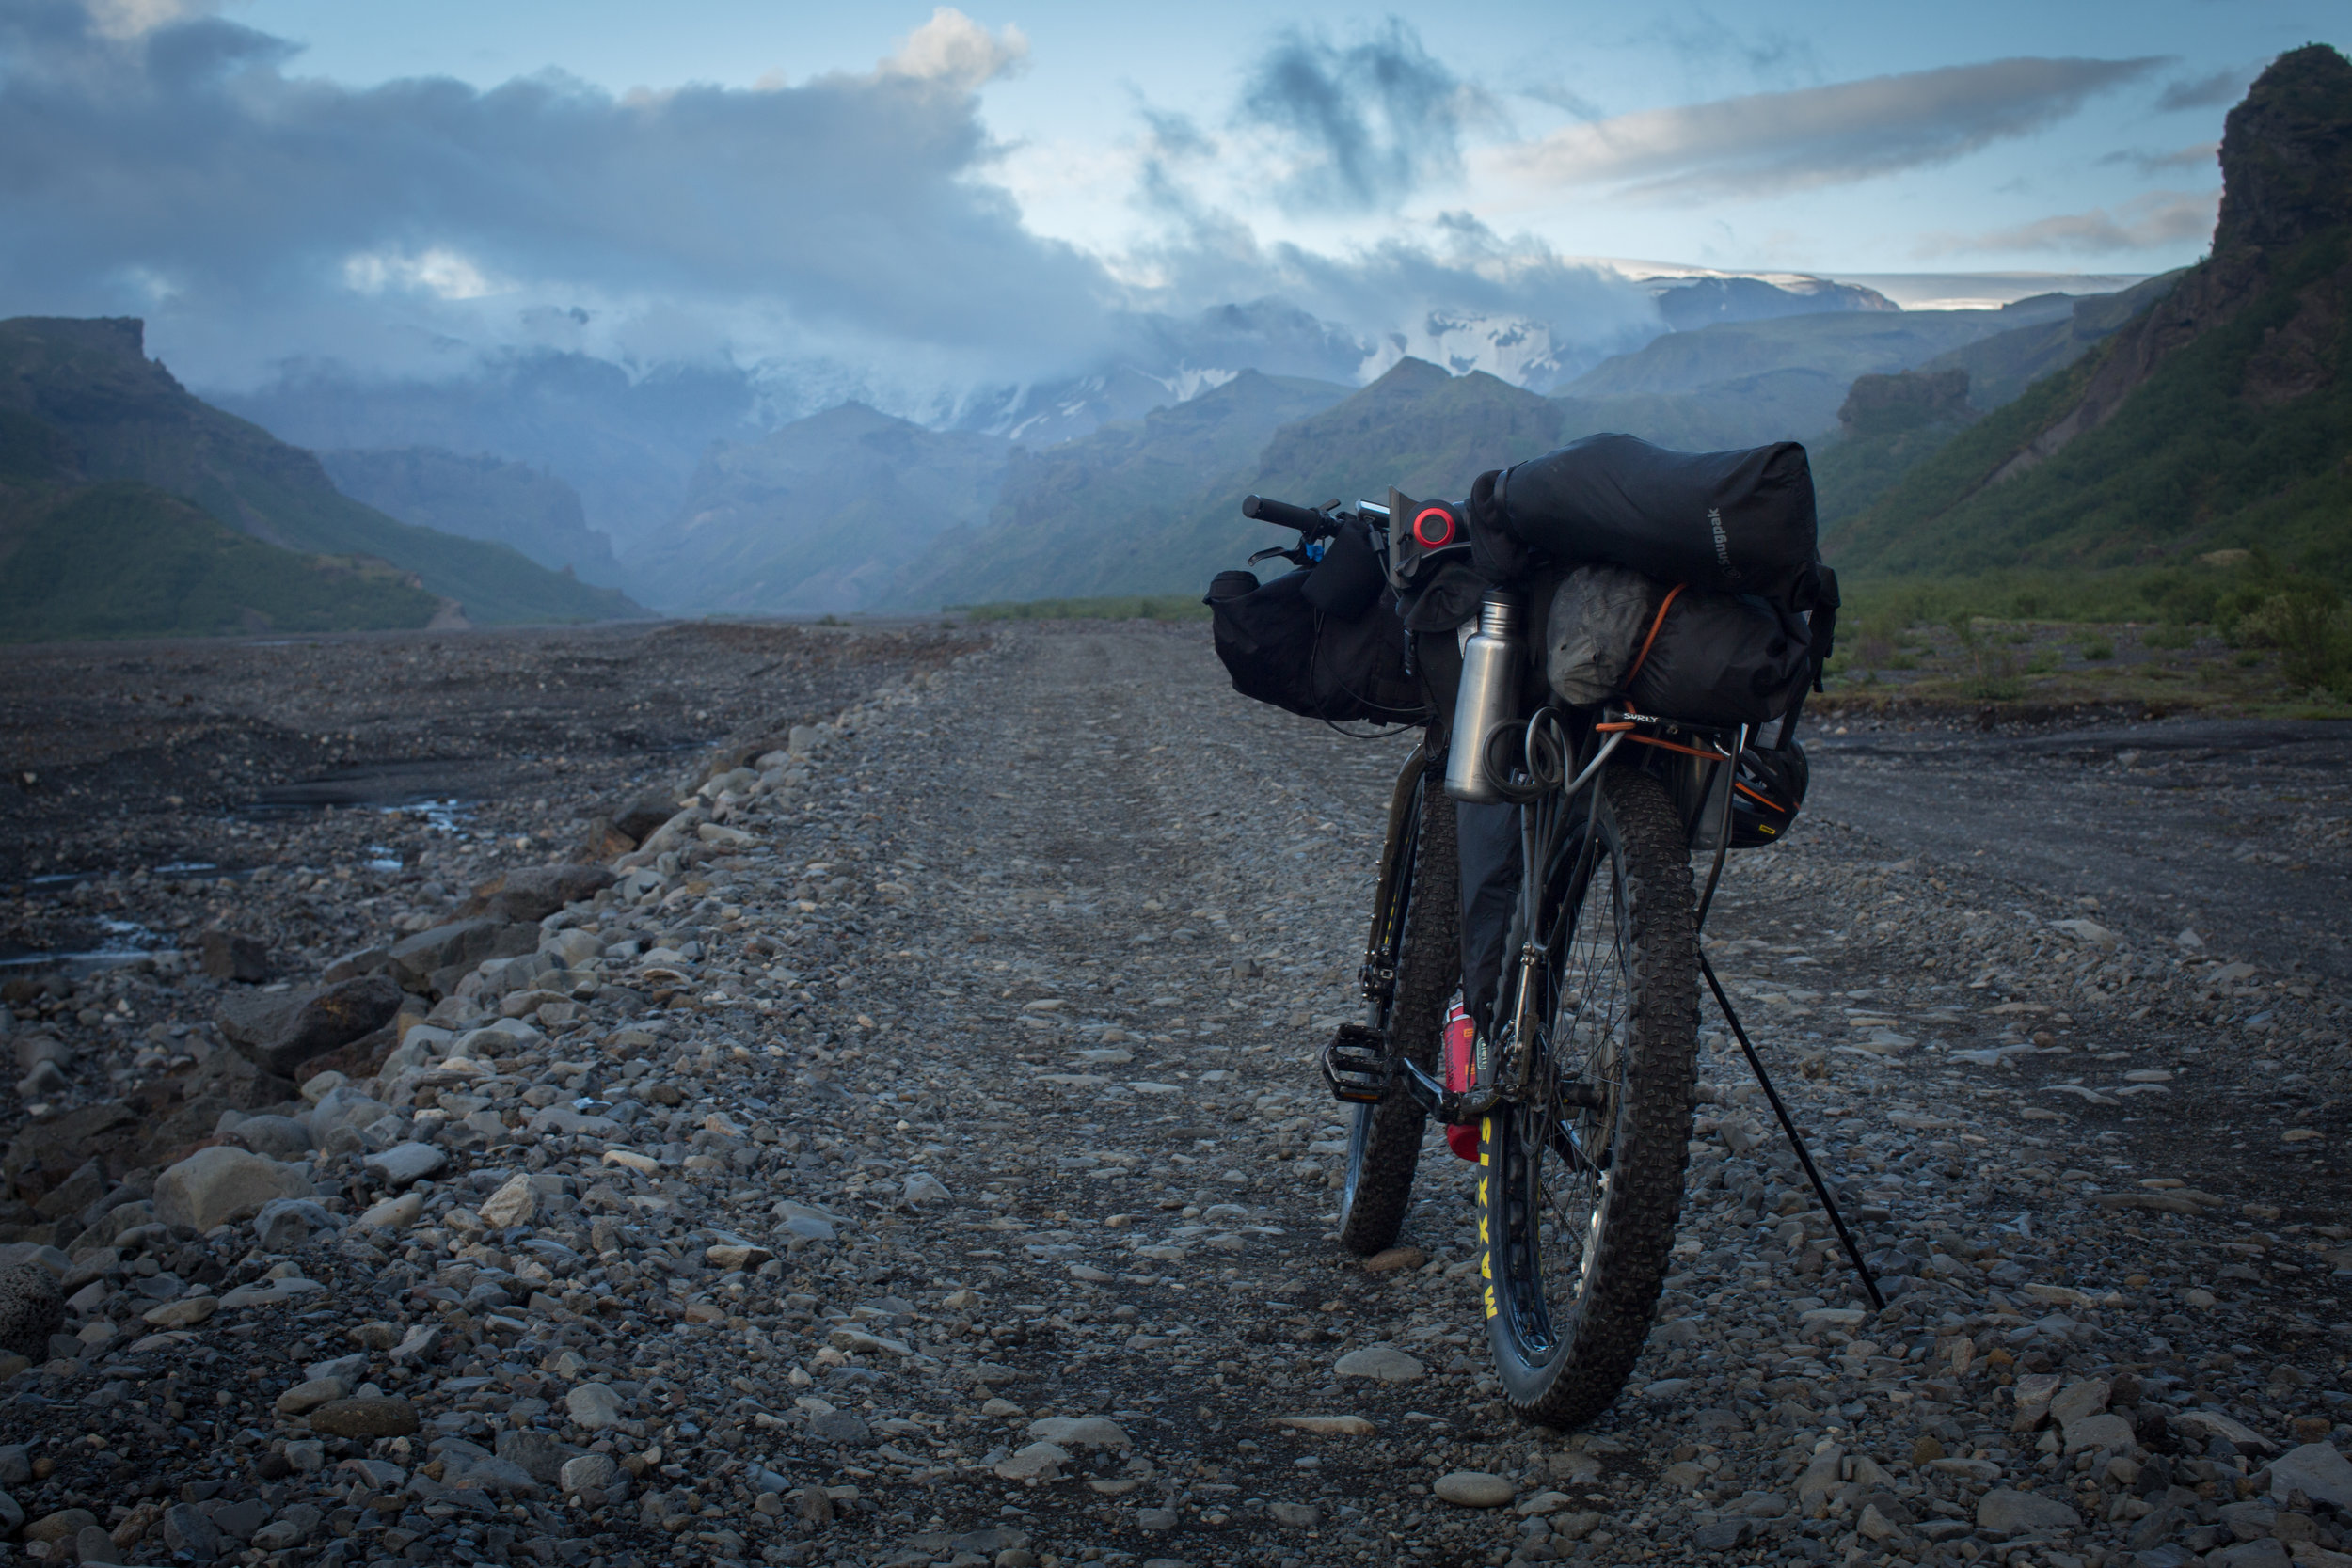 bikepacking, bikepacking blog, bikepacking gear, bikepacking routes, bicycle touring, bicycle touring blog, bicycle touring apocalypse, cyclist, jack mac, jack macgowan, van life, surly, surly bikes, 29er, fat bike, iceland, visit iceland, Laugavegur, Laugavegur hiking trail